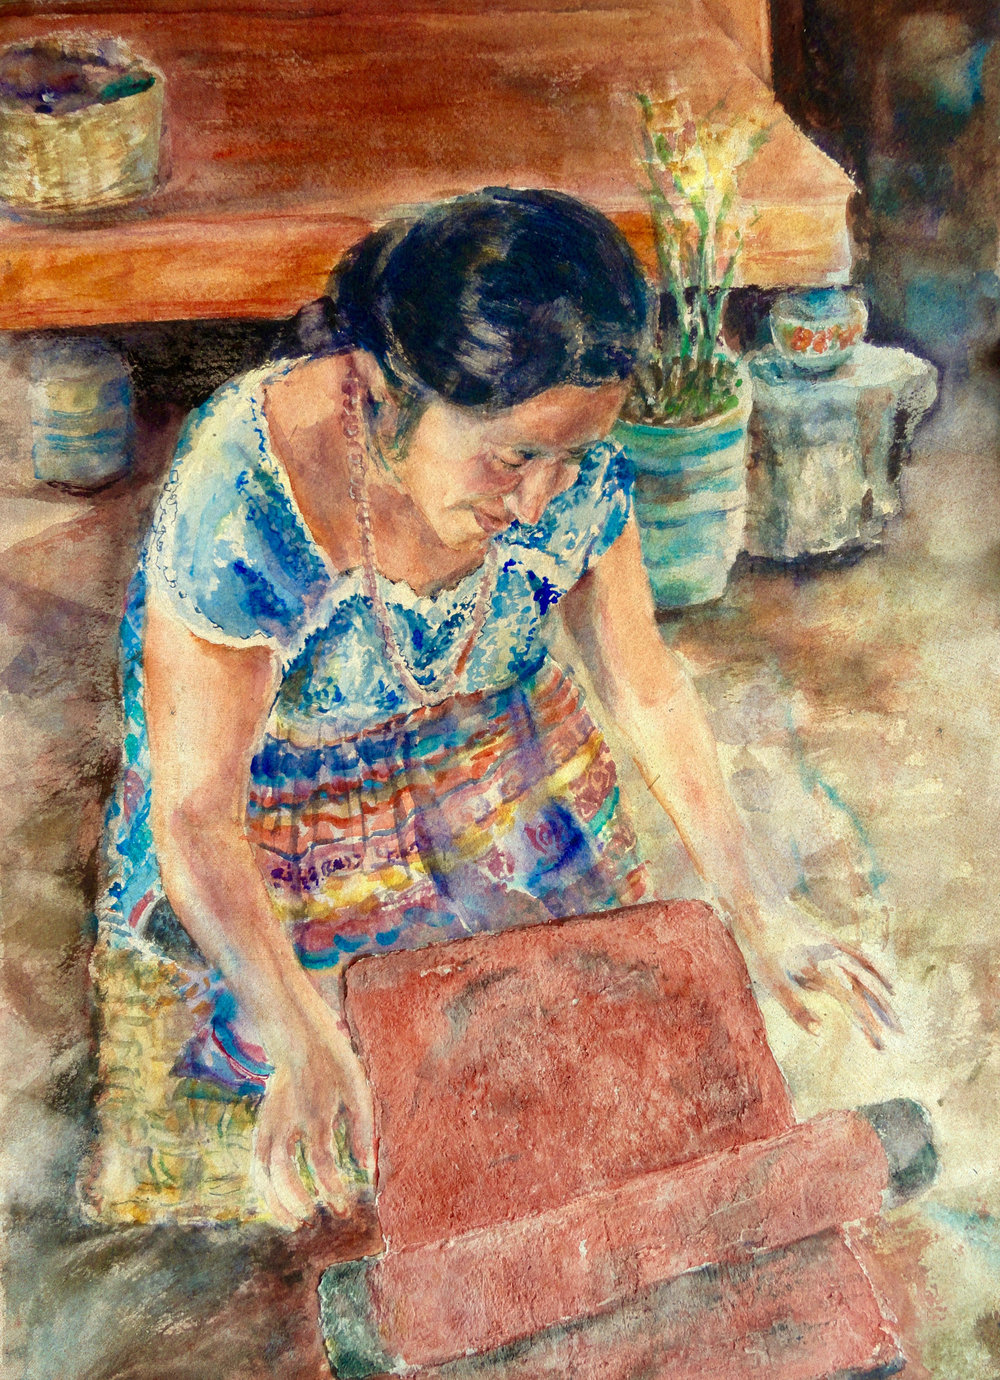 Guatemalan Woman Grinding Spices